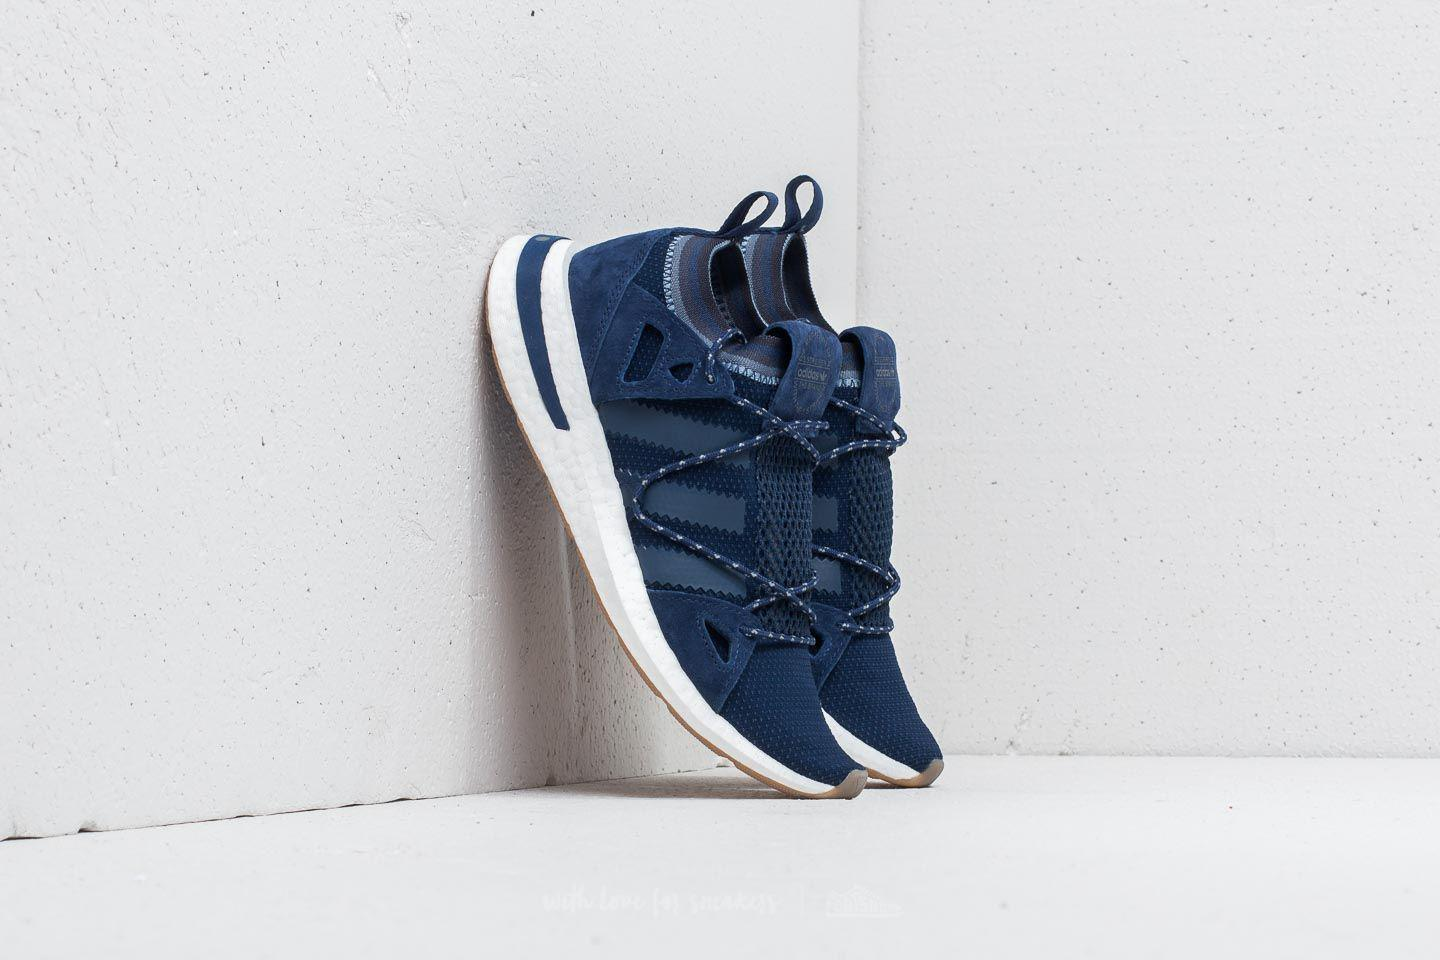 Lyst - adidas Originals Adidas Arkyn W Dark Blue  White  Gum in Blue ... a7ae962d7